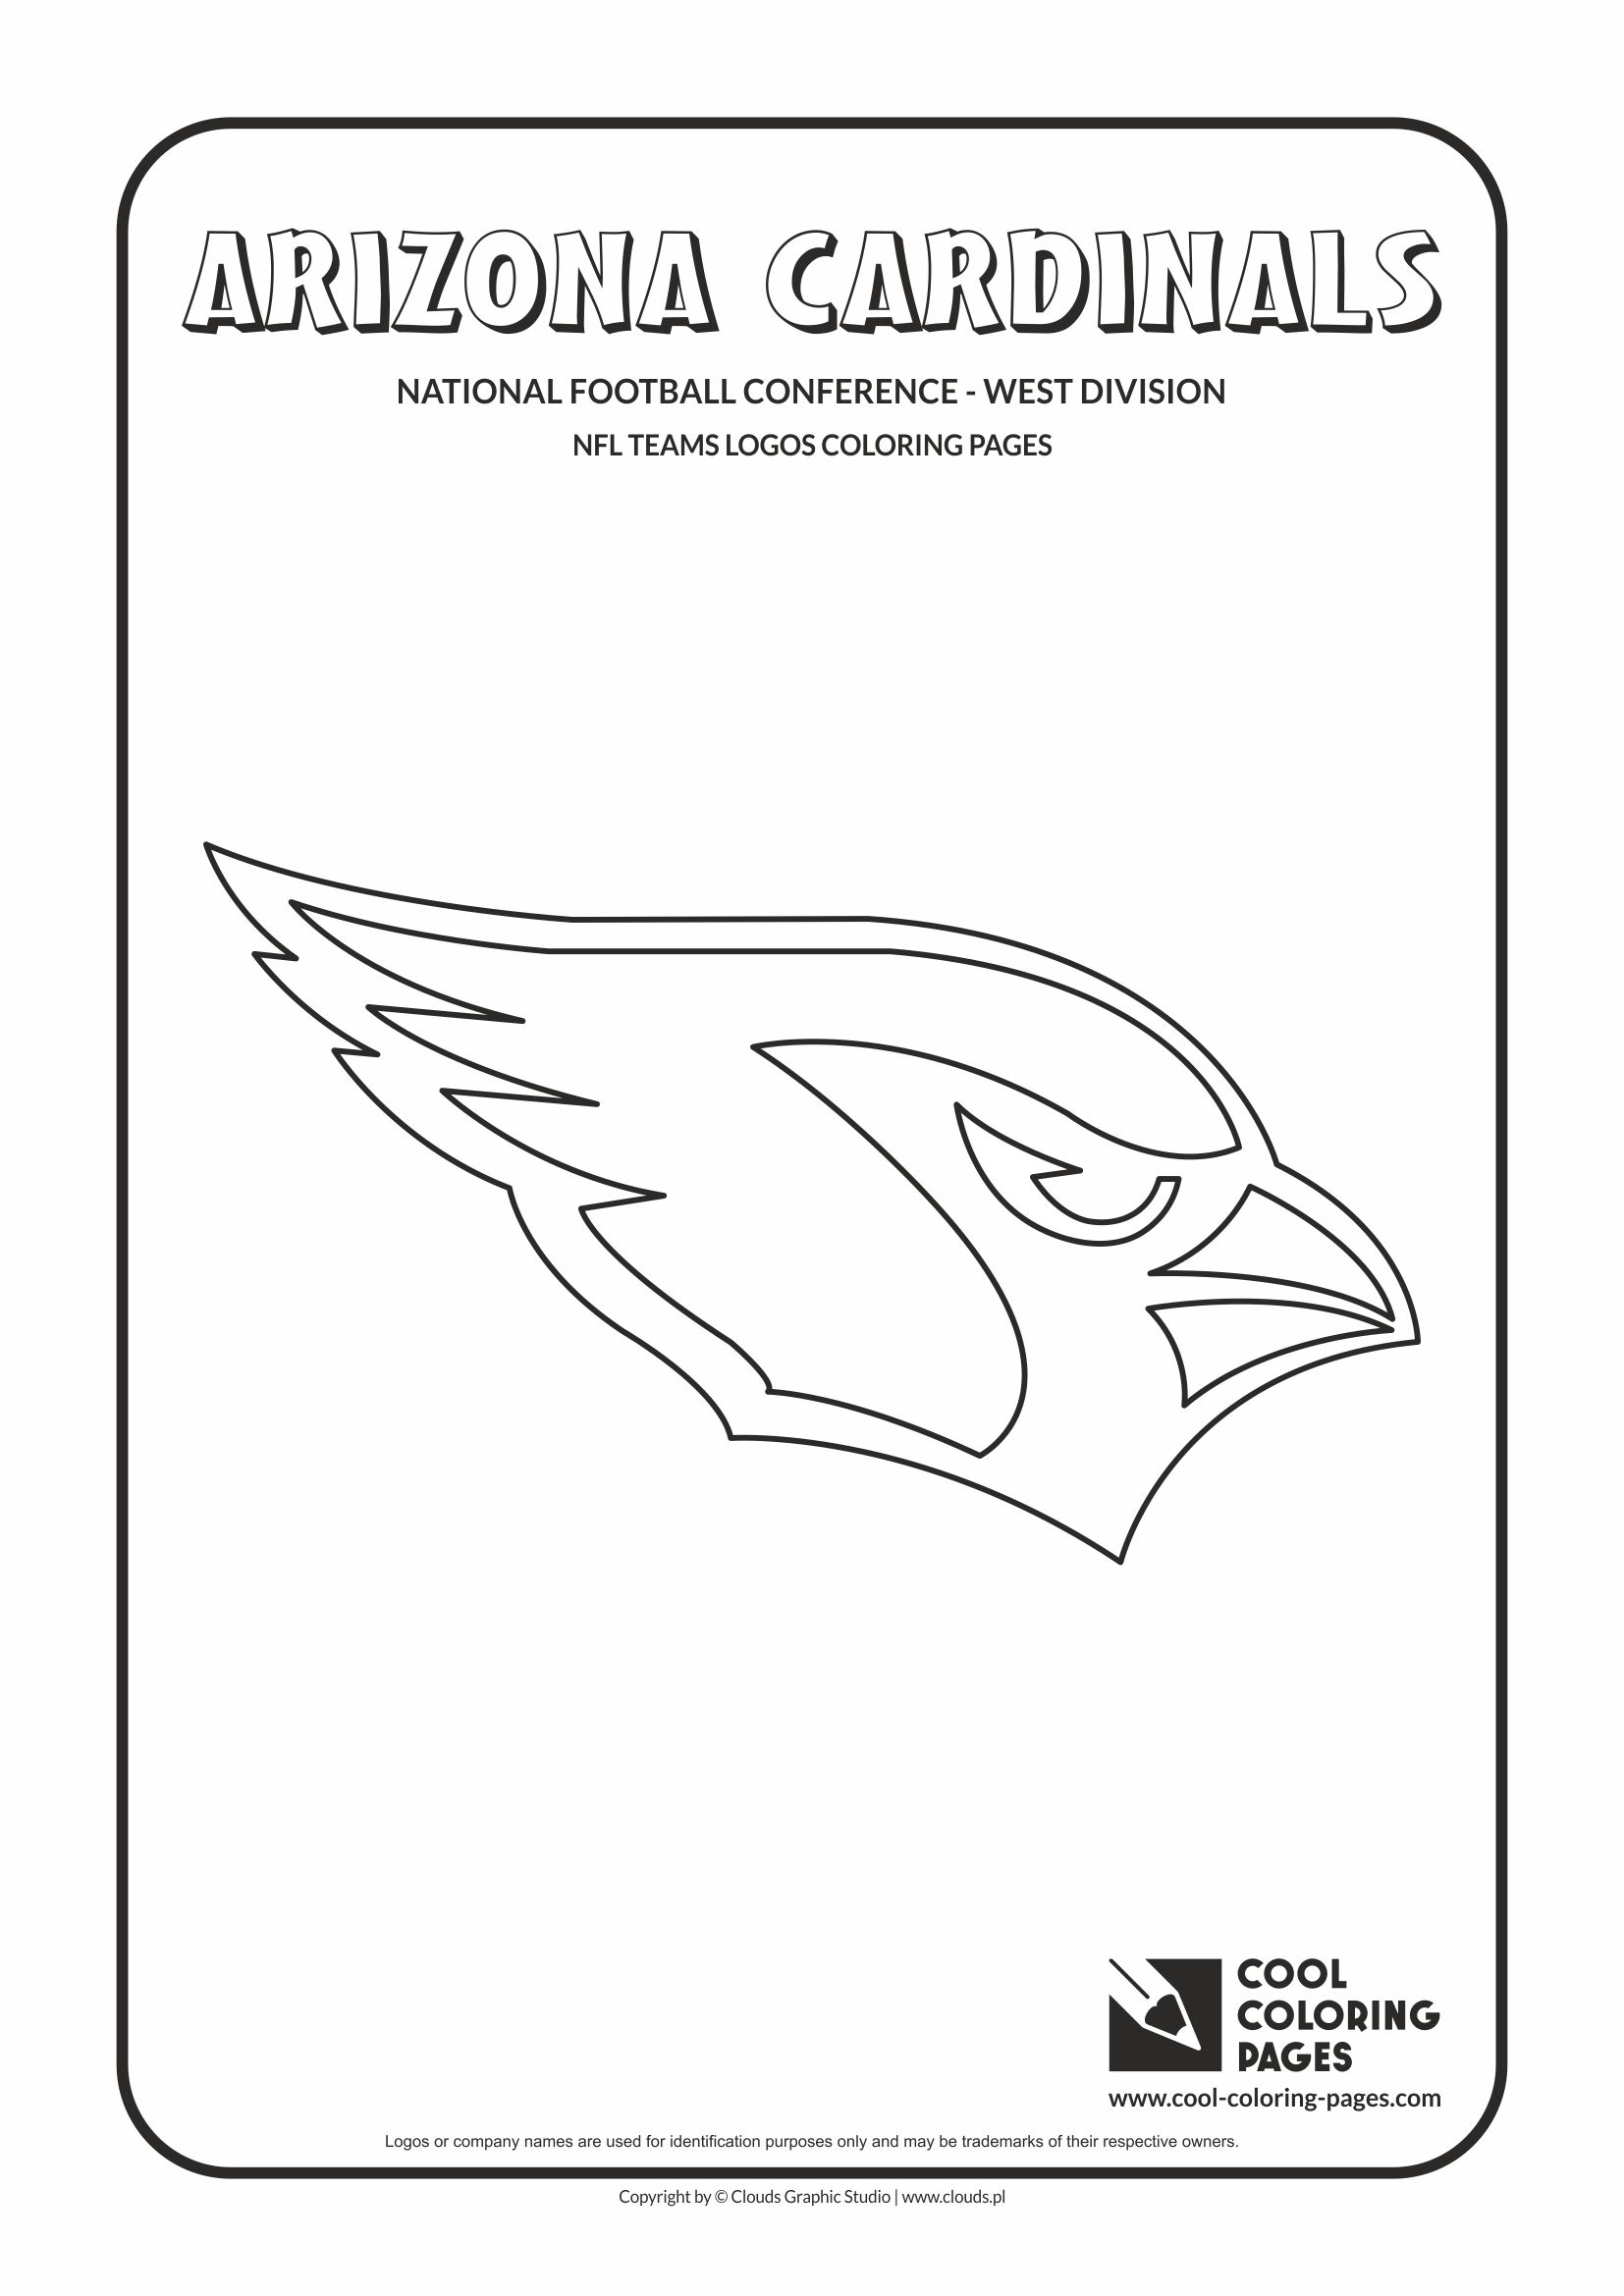 nfl teams logos coloring pages cool coloring pages